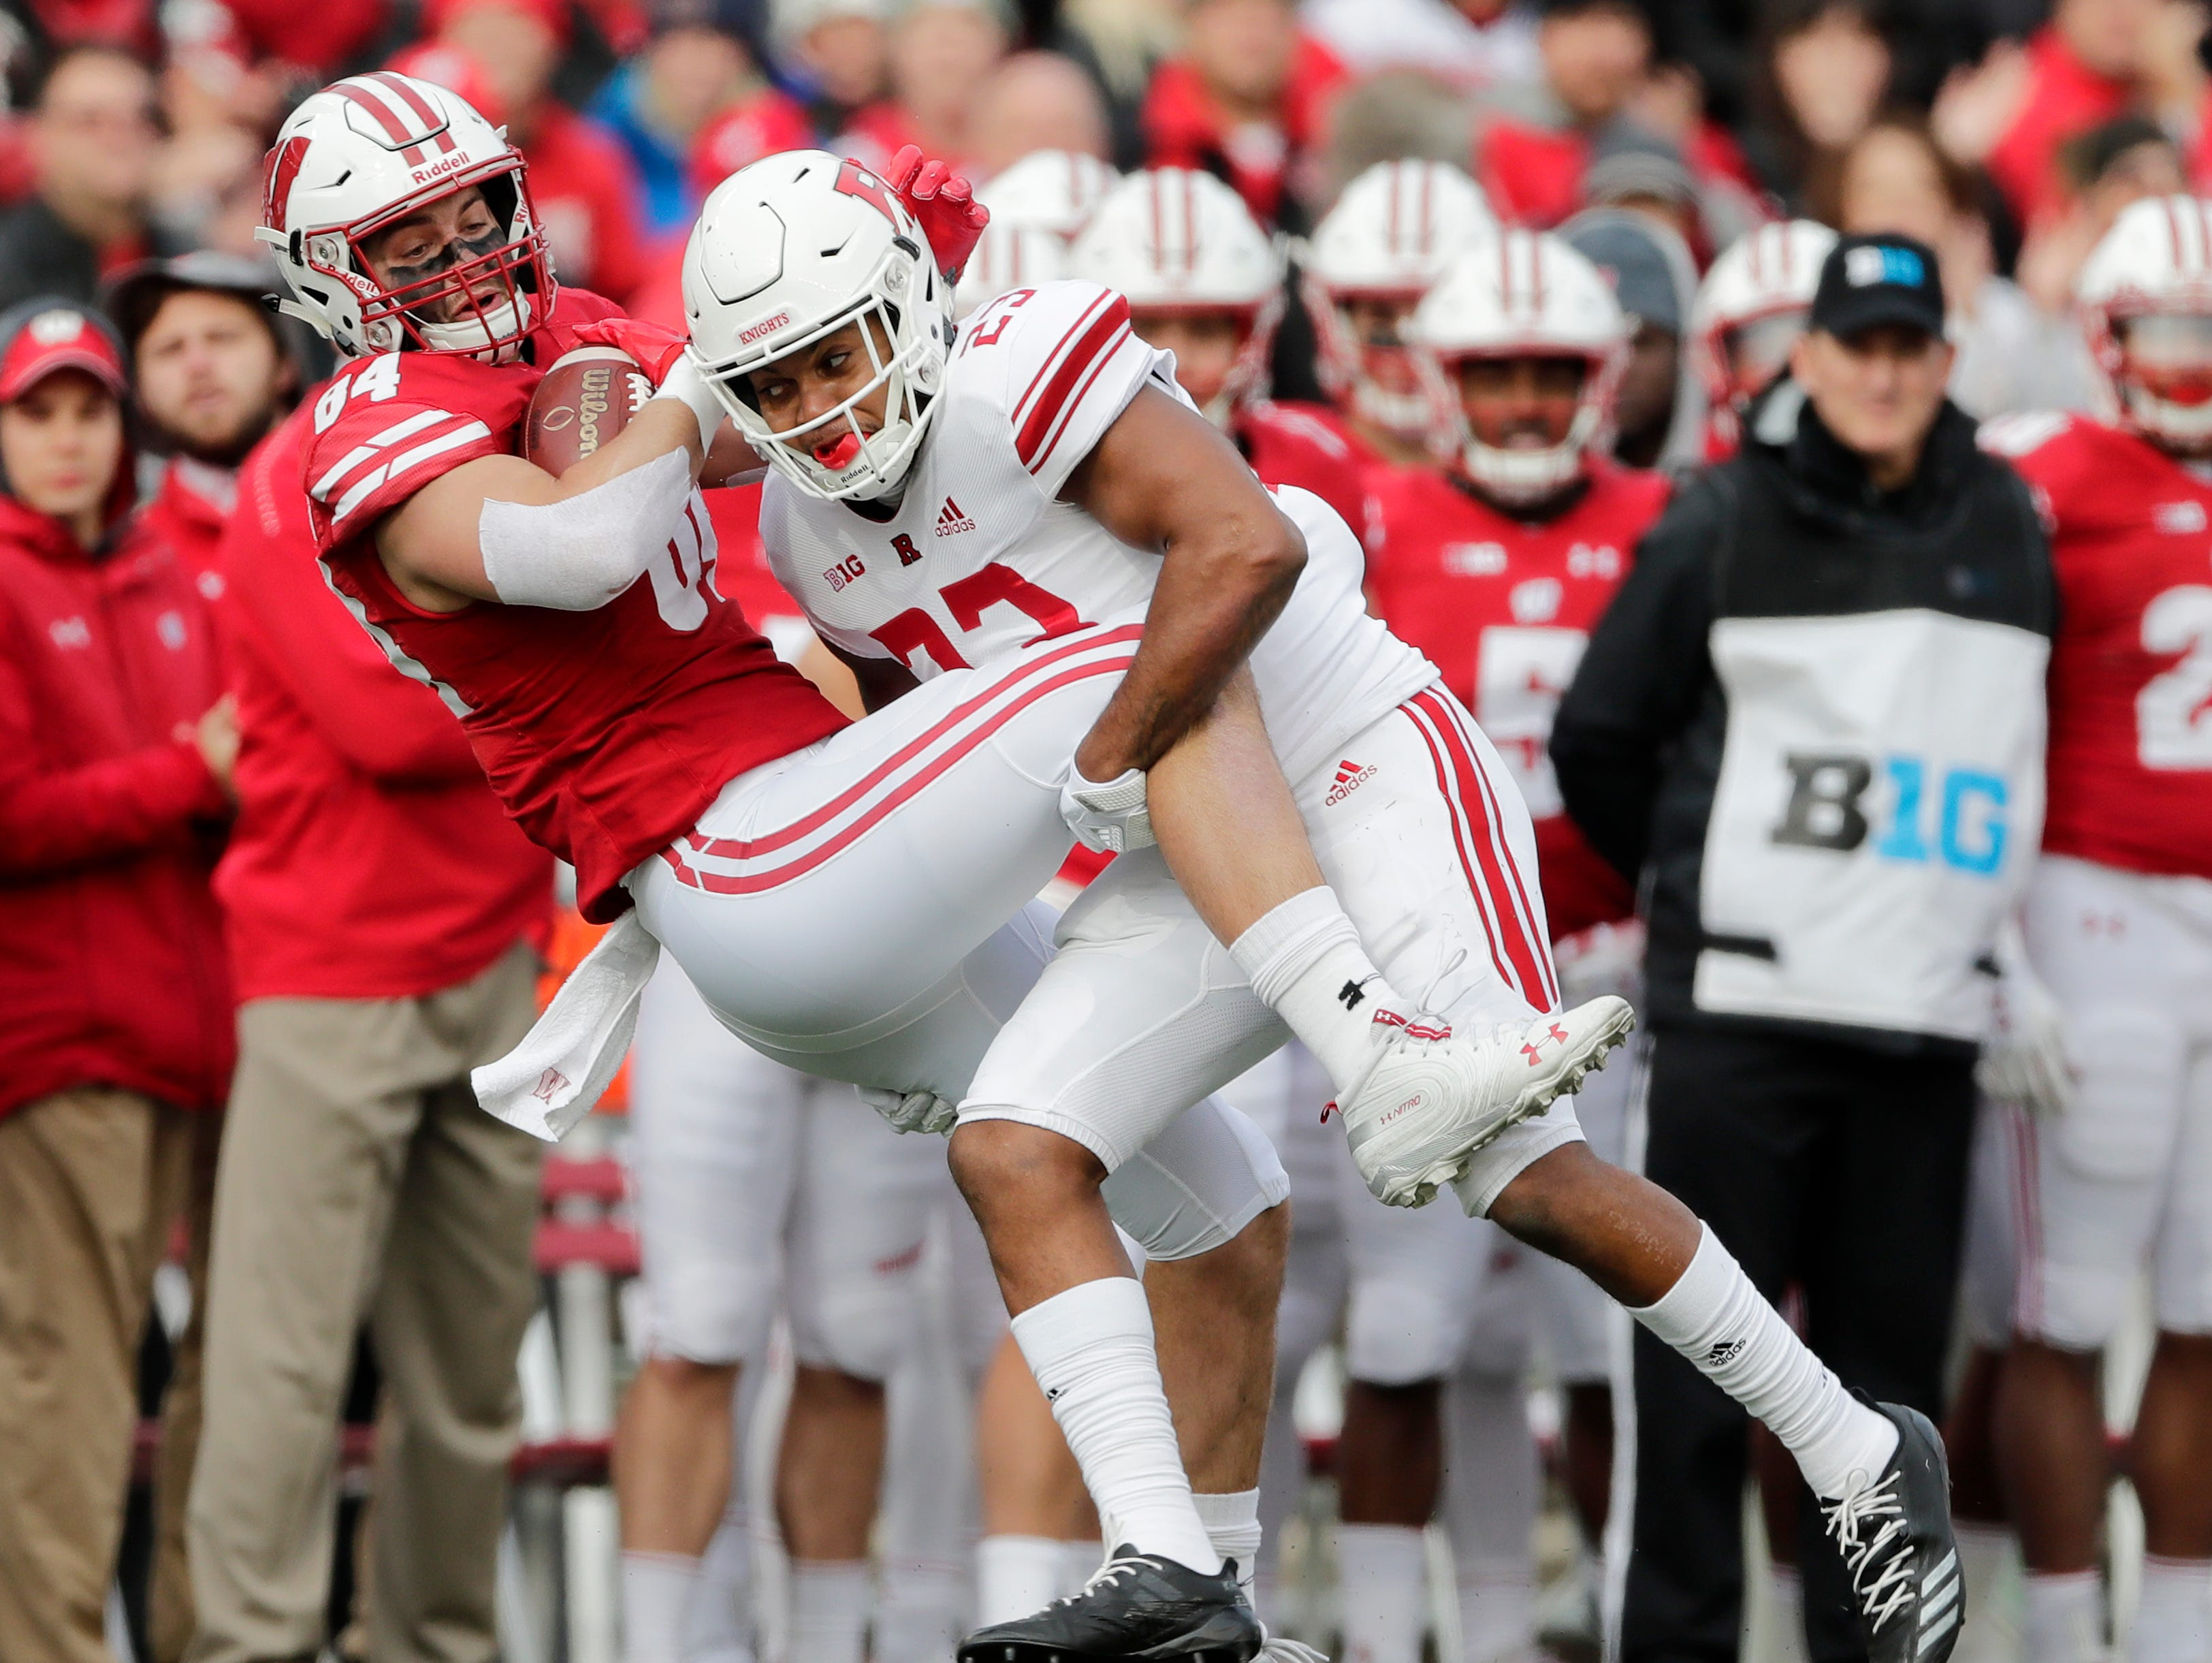 Rutgers Scarlet Knights defensive back Kiy Hester (23) tackles Wisconsin Badgers tight end Jake Ferguson (84) in the first quarter of a Big Ten football game at Camp Randall Stadium on Saturday, November 3, 2018 in Madison, Wis.Adam Wesley/USA TODAY NETWORK-Wisconsin